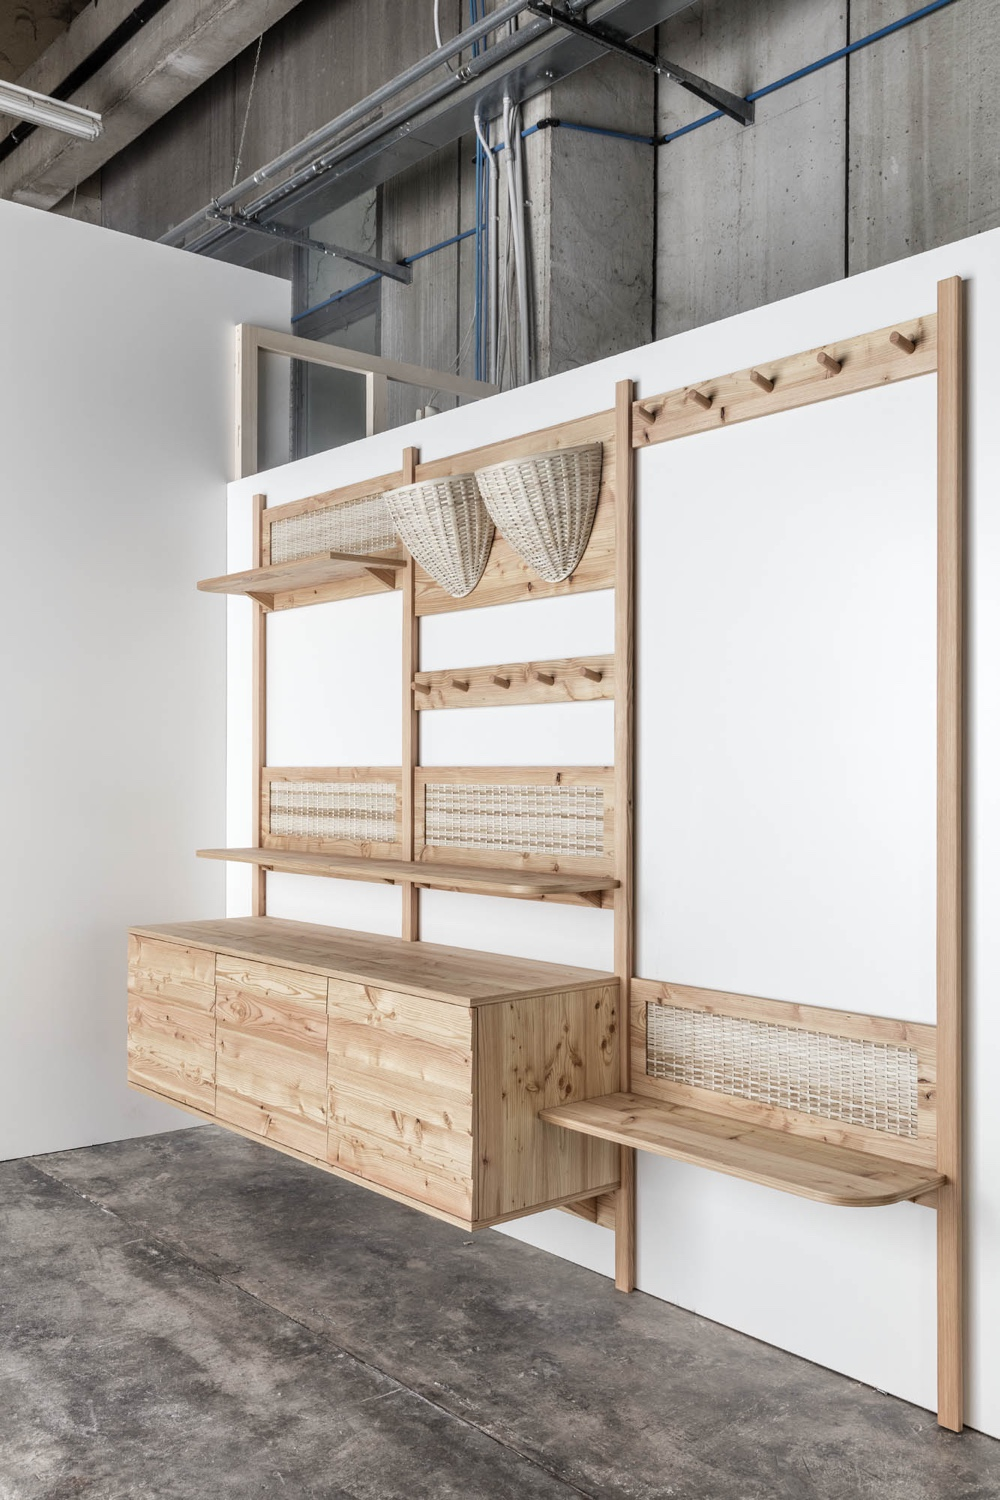 Trentino Storage by Sebastian Cox and L'Arte del Legno.